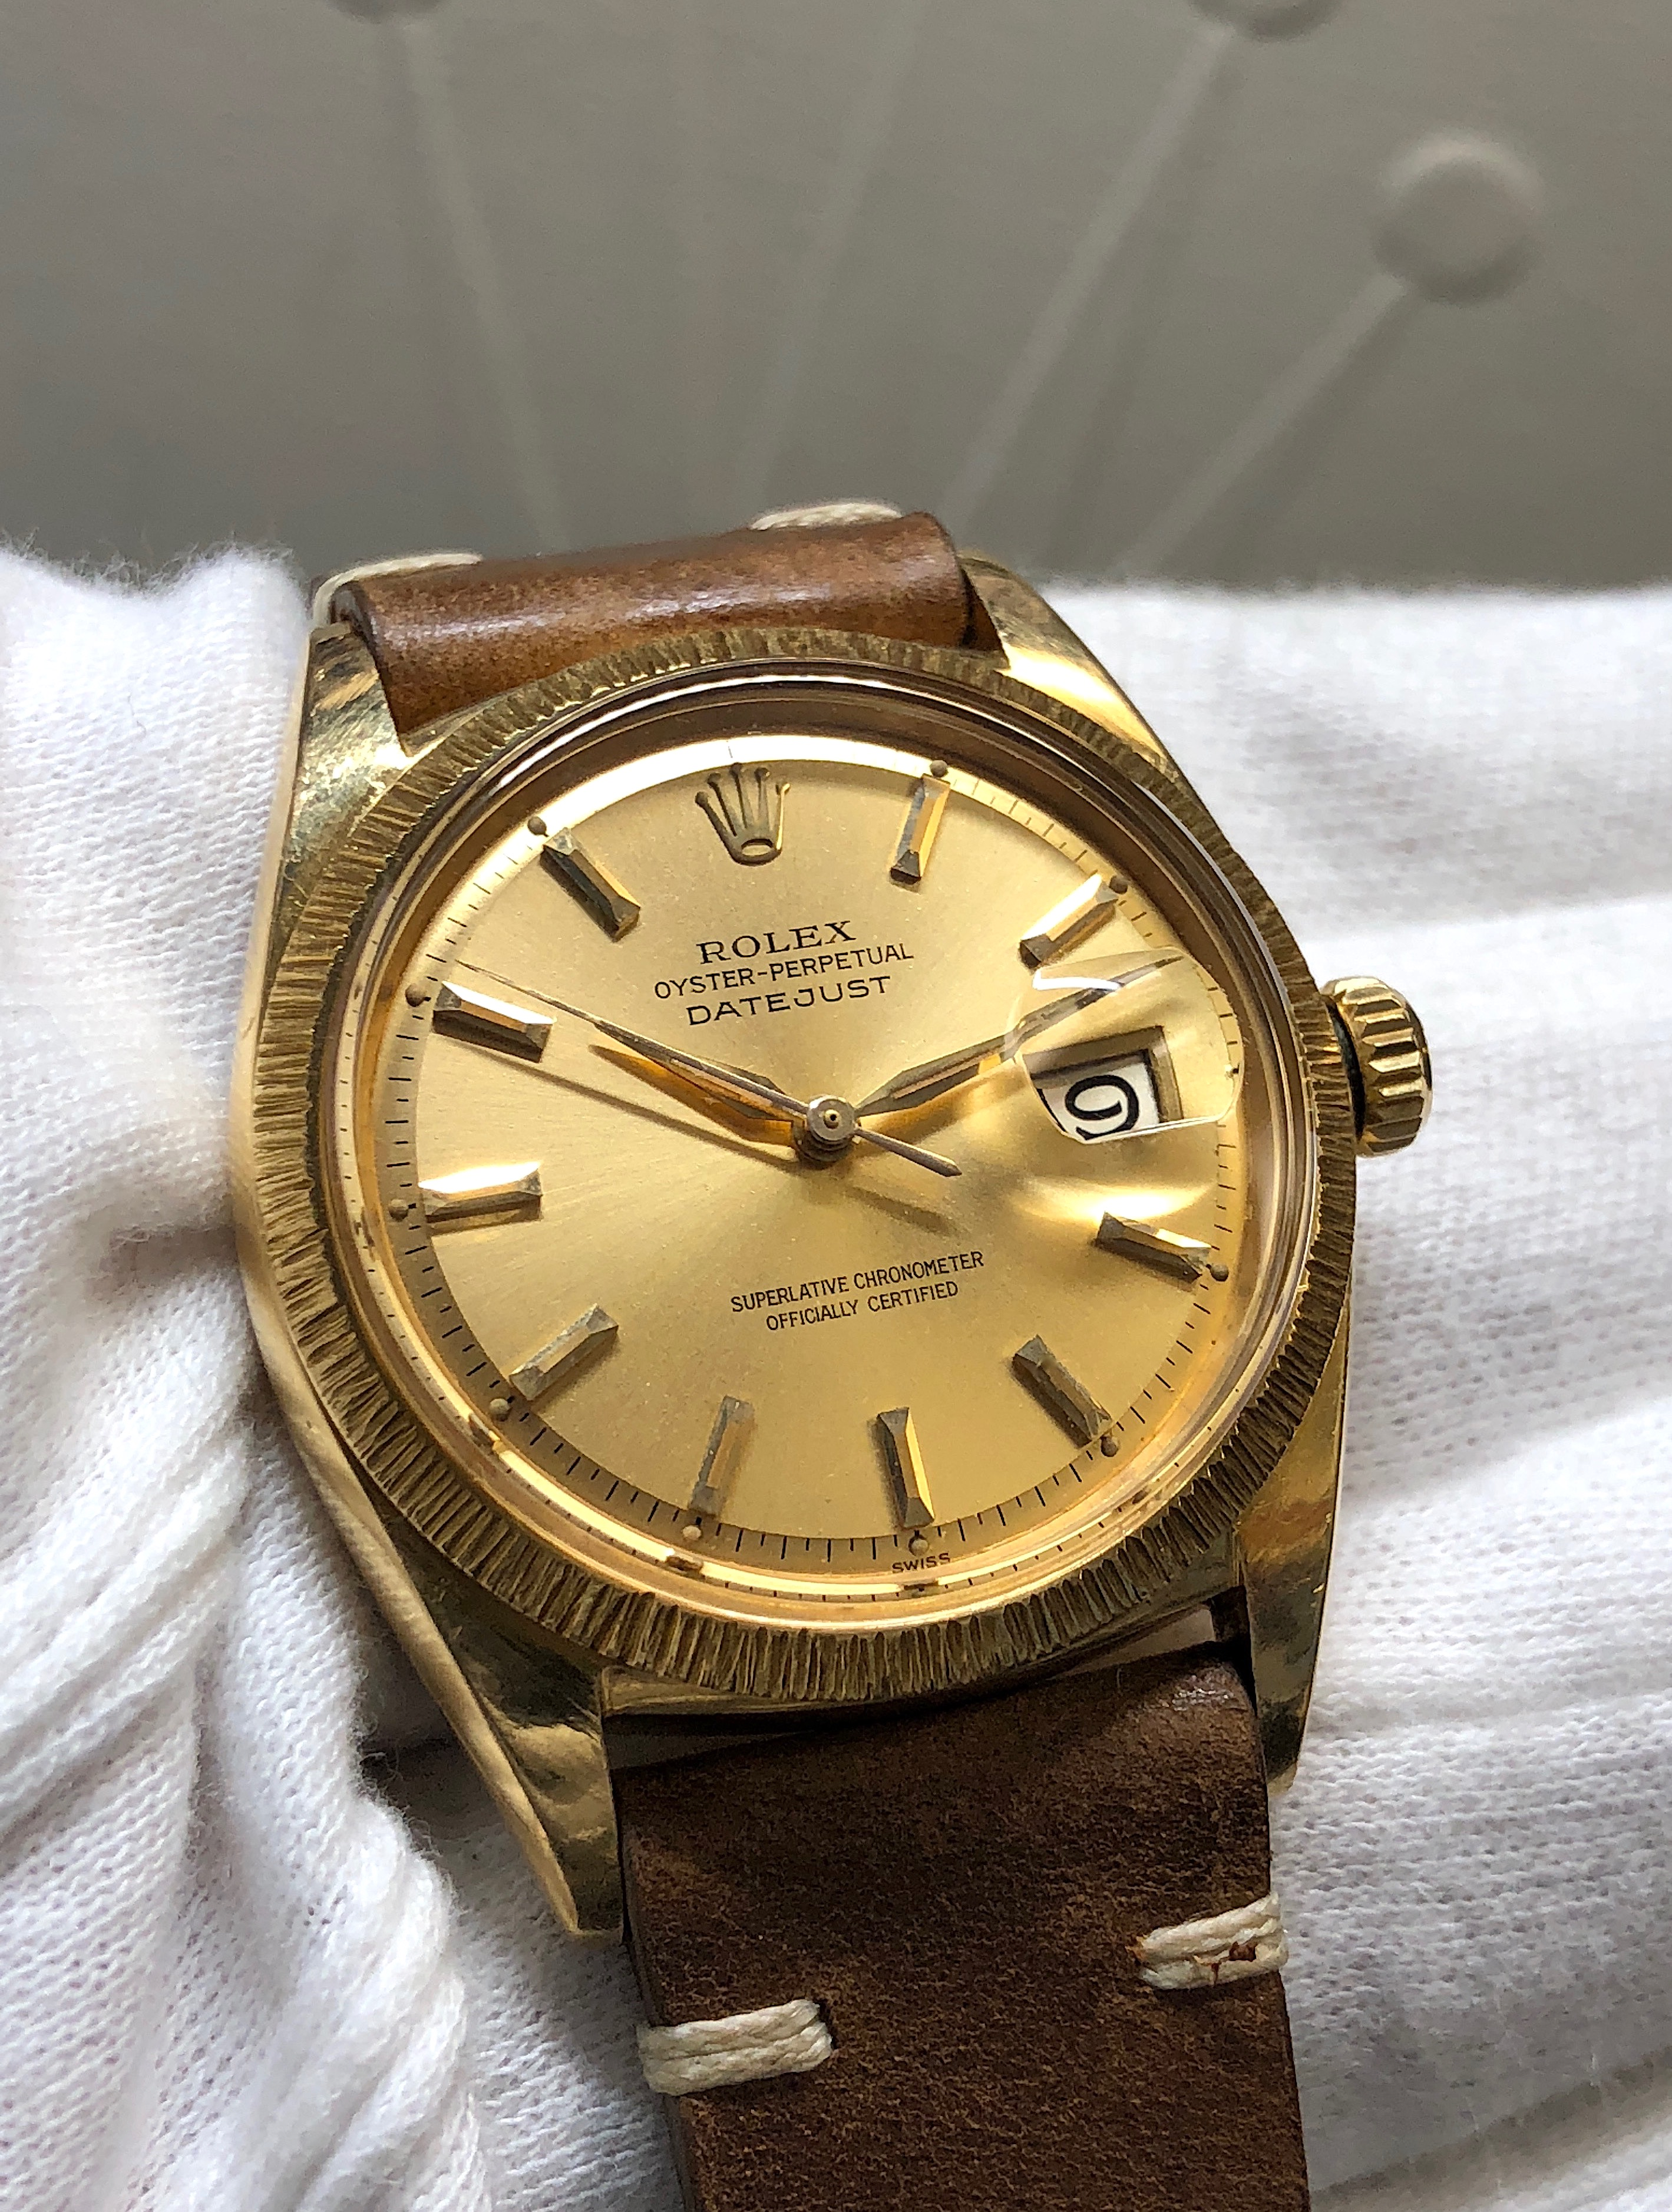 Vintage Rolex Datejust 1607 18K Yellow Gold Champagne Dial Dauphine